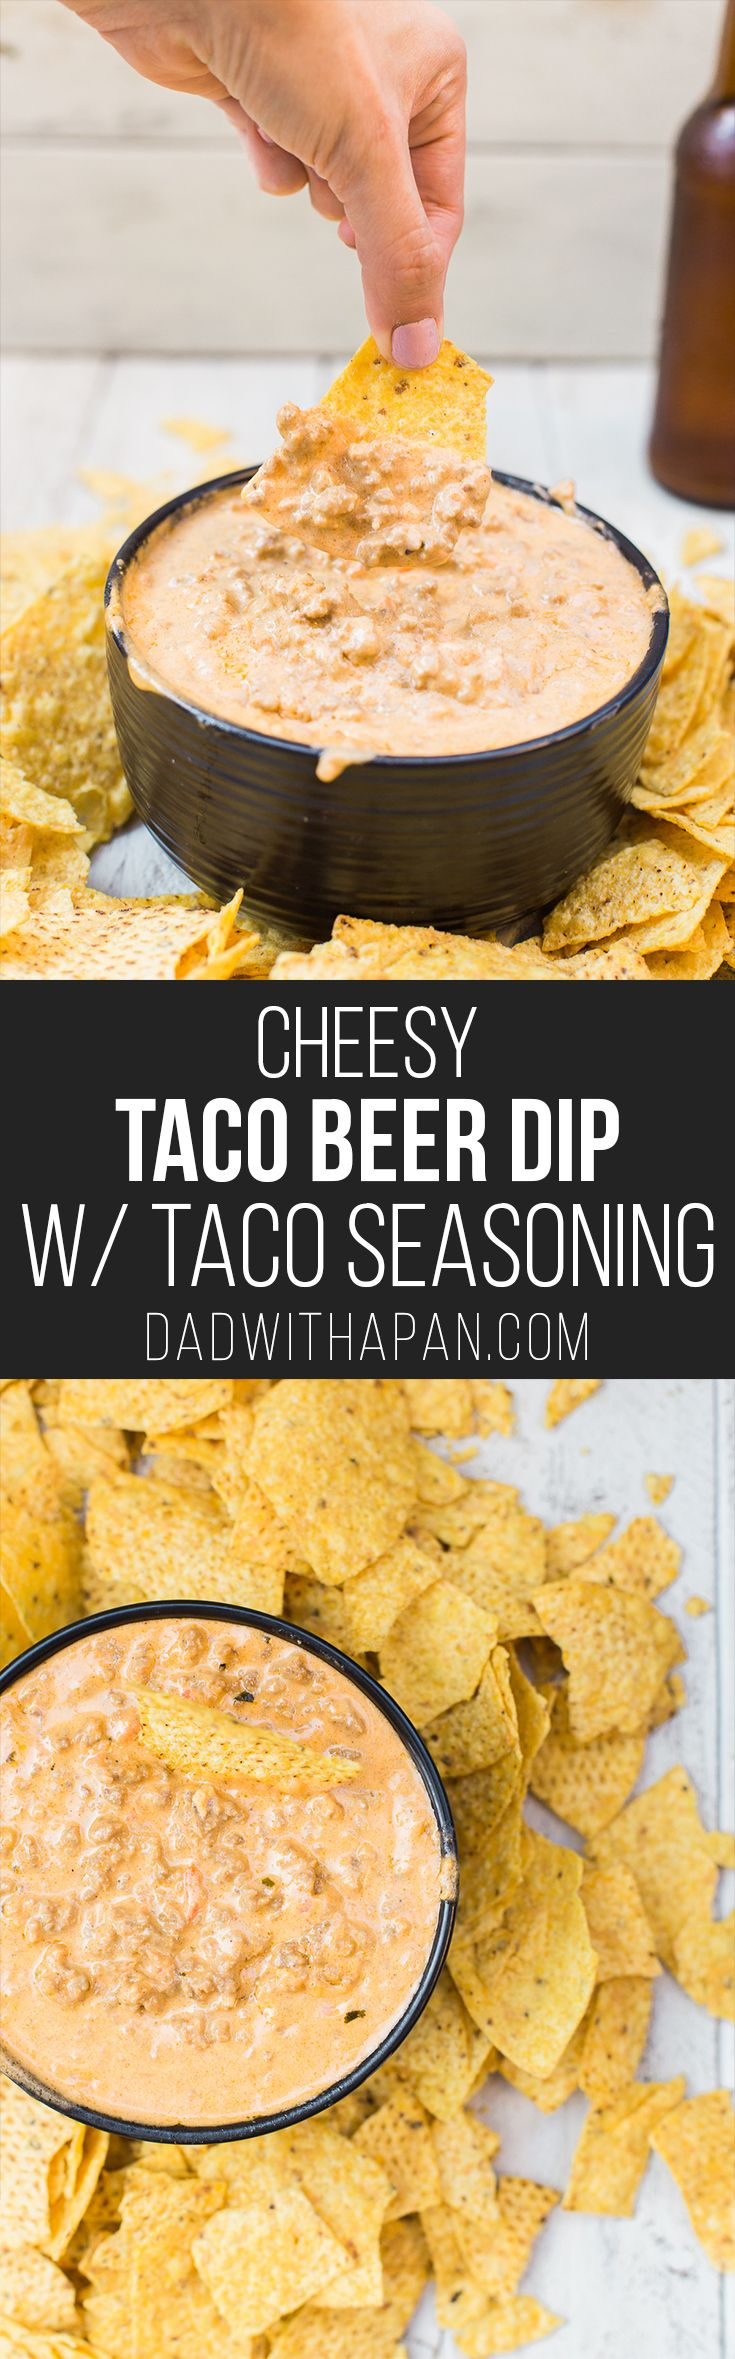 Cheesy Taco Beer Dip with a Taco Seasoning Recipe from scratch! @SchweidAndSons…